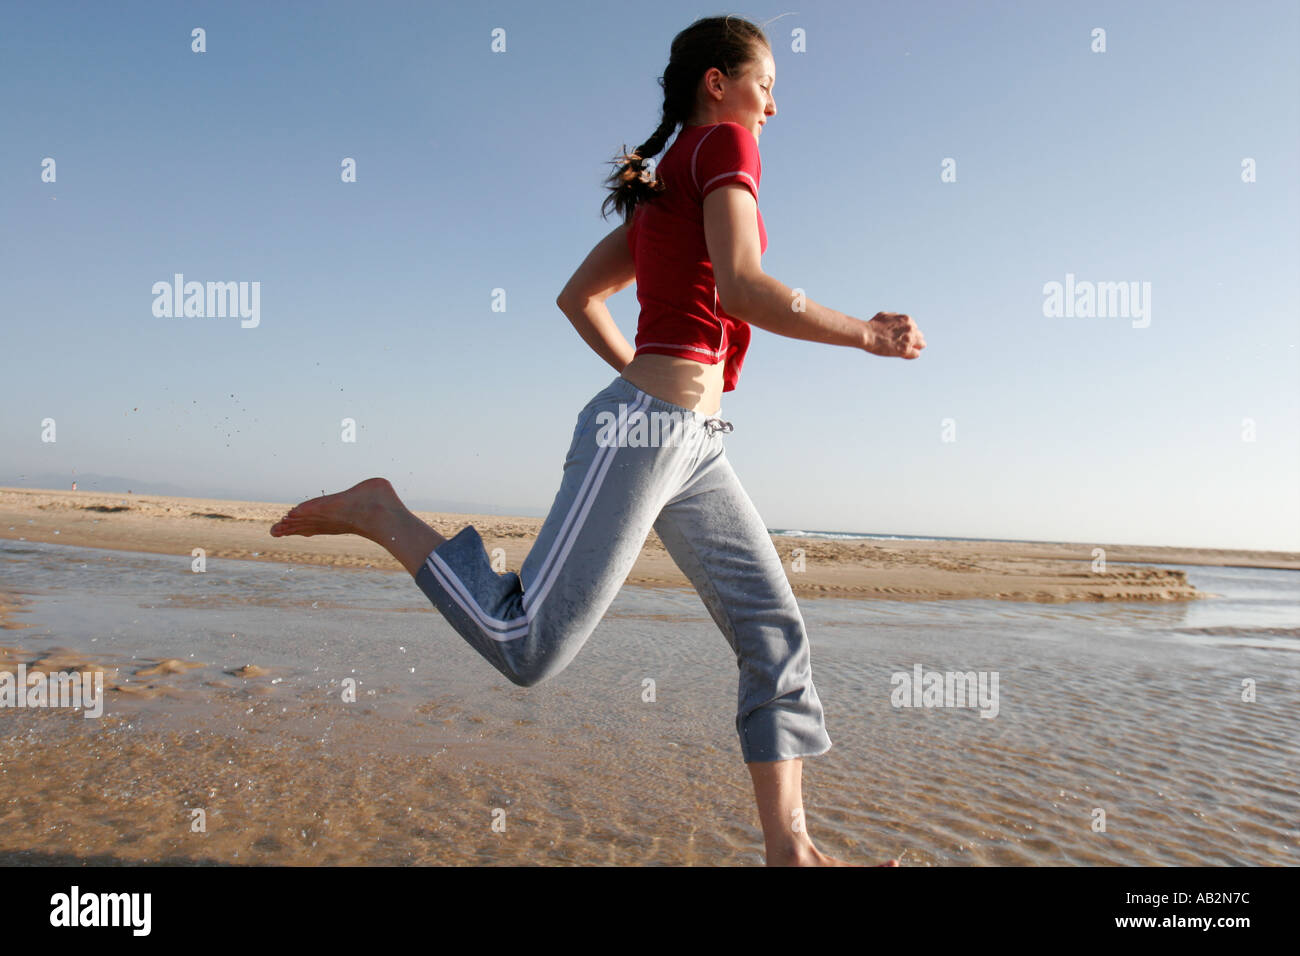 young woman runner in action on the beach - Stock Image